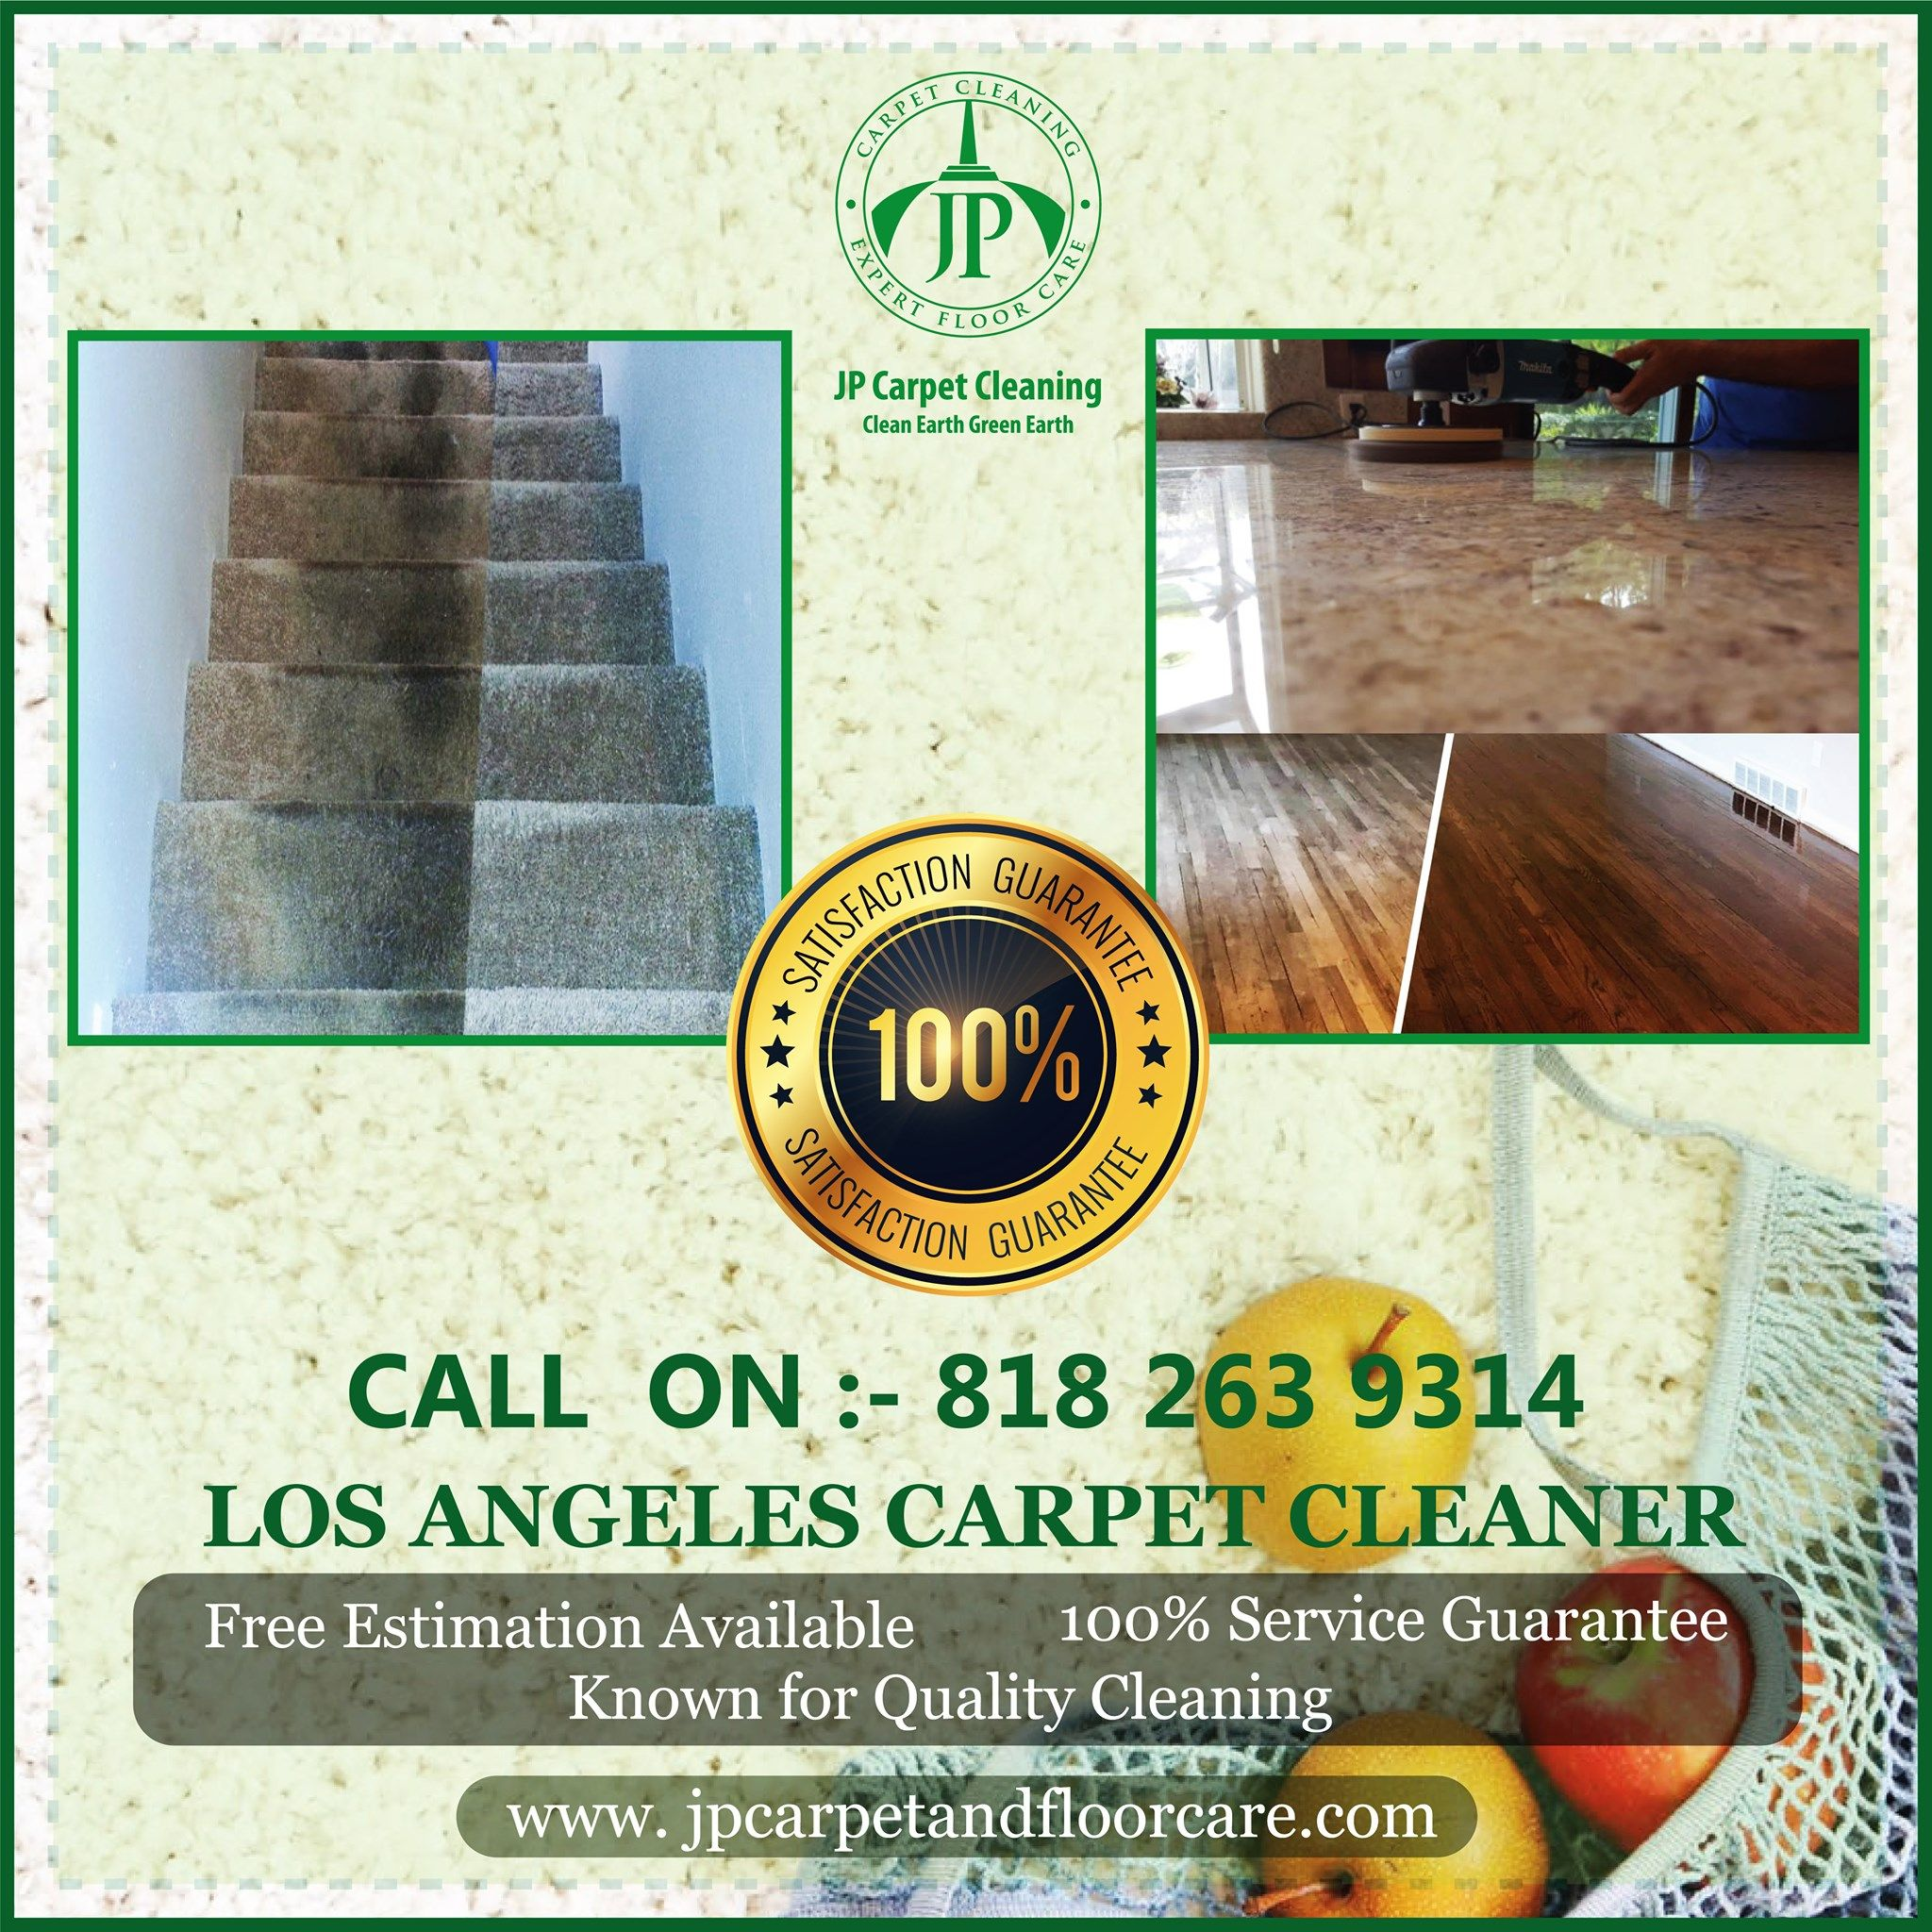 Los Angeles Carpet Cleaner In 2020 How To Clean Carpet Carpet Cleaners Cleaning Upholstery